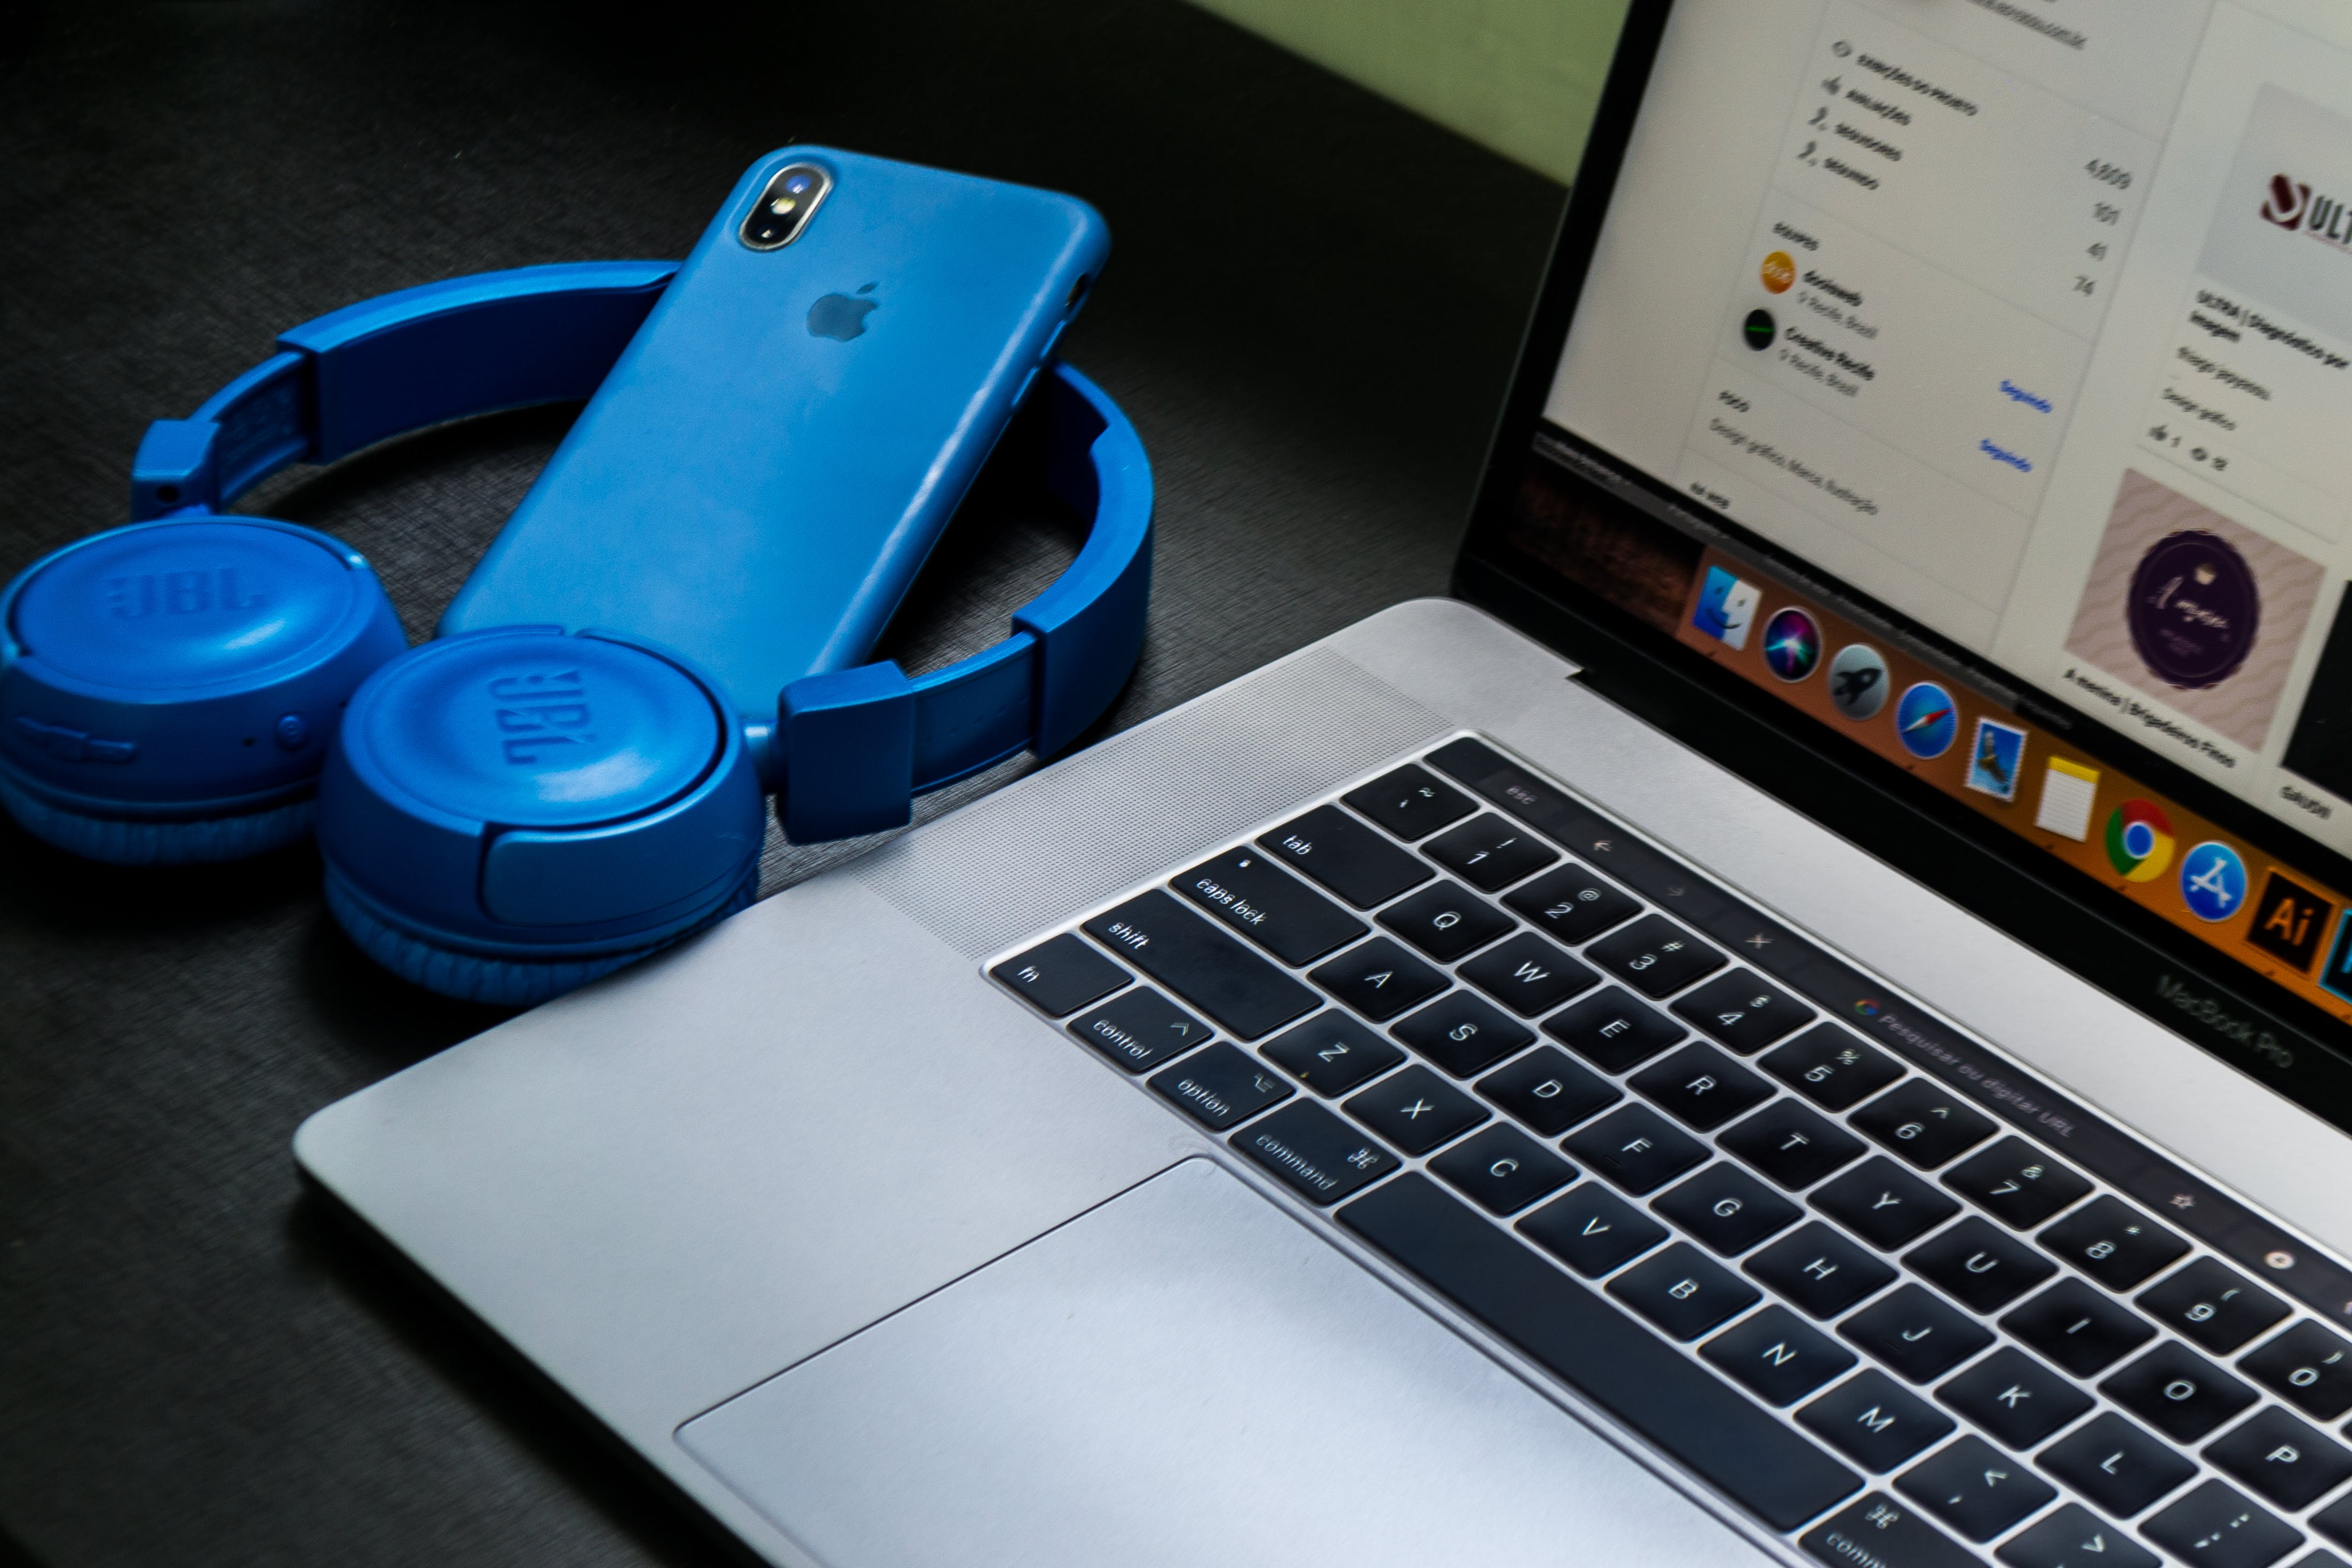 Macbook Pro Beside Blue Wireless Headphones